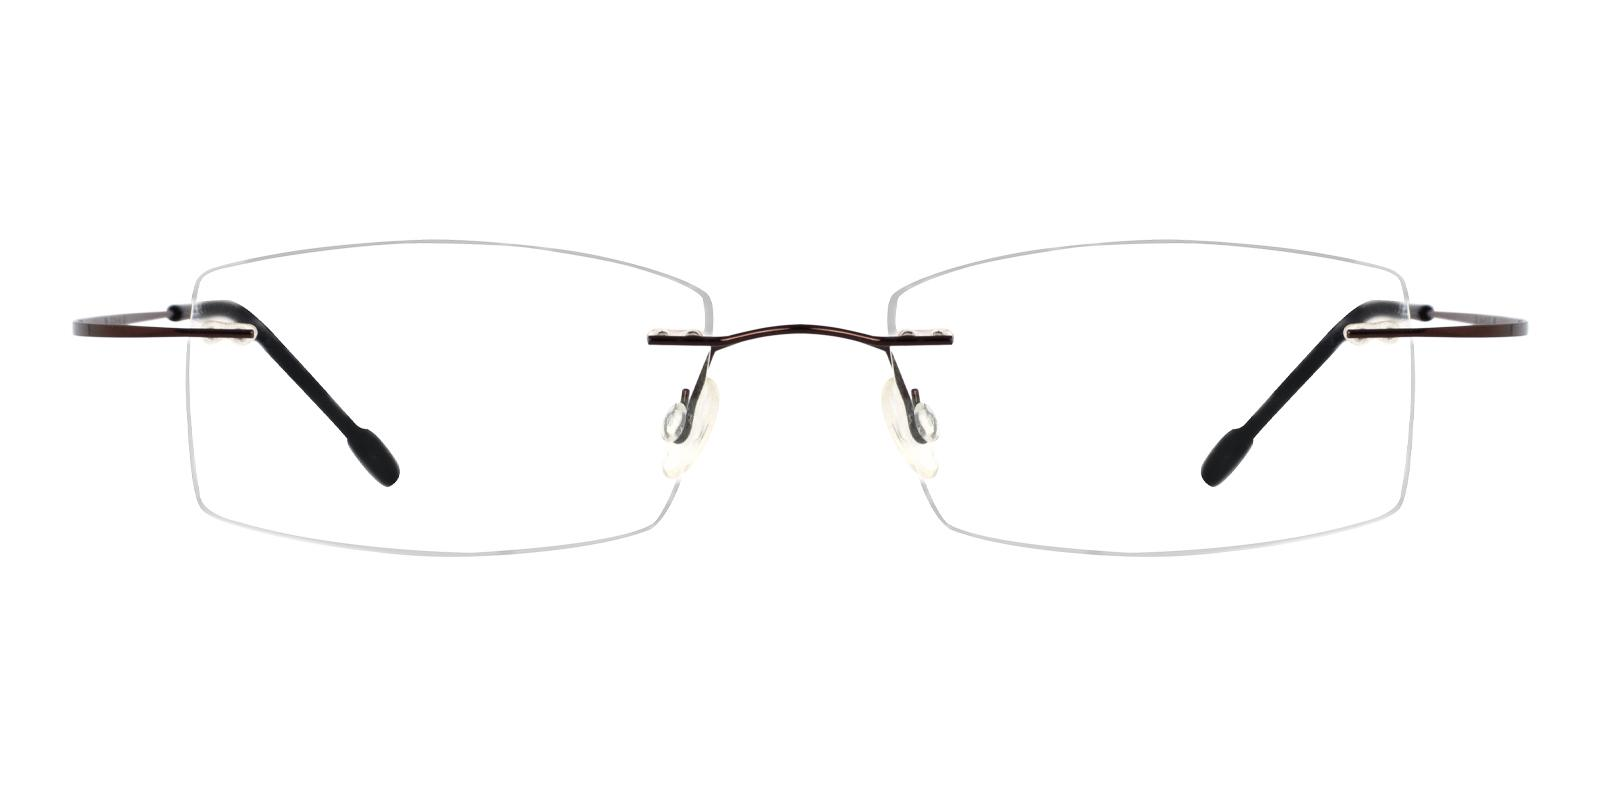 Pluto Brown Metal , Memory Eyeglasses , NosePads Frames from ABBE Glasses